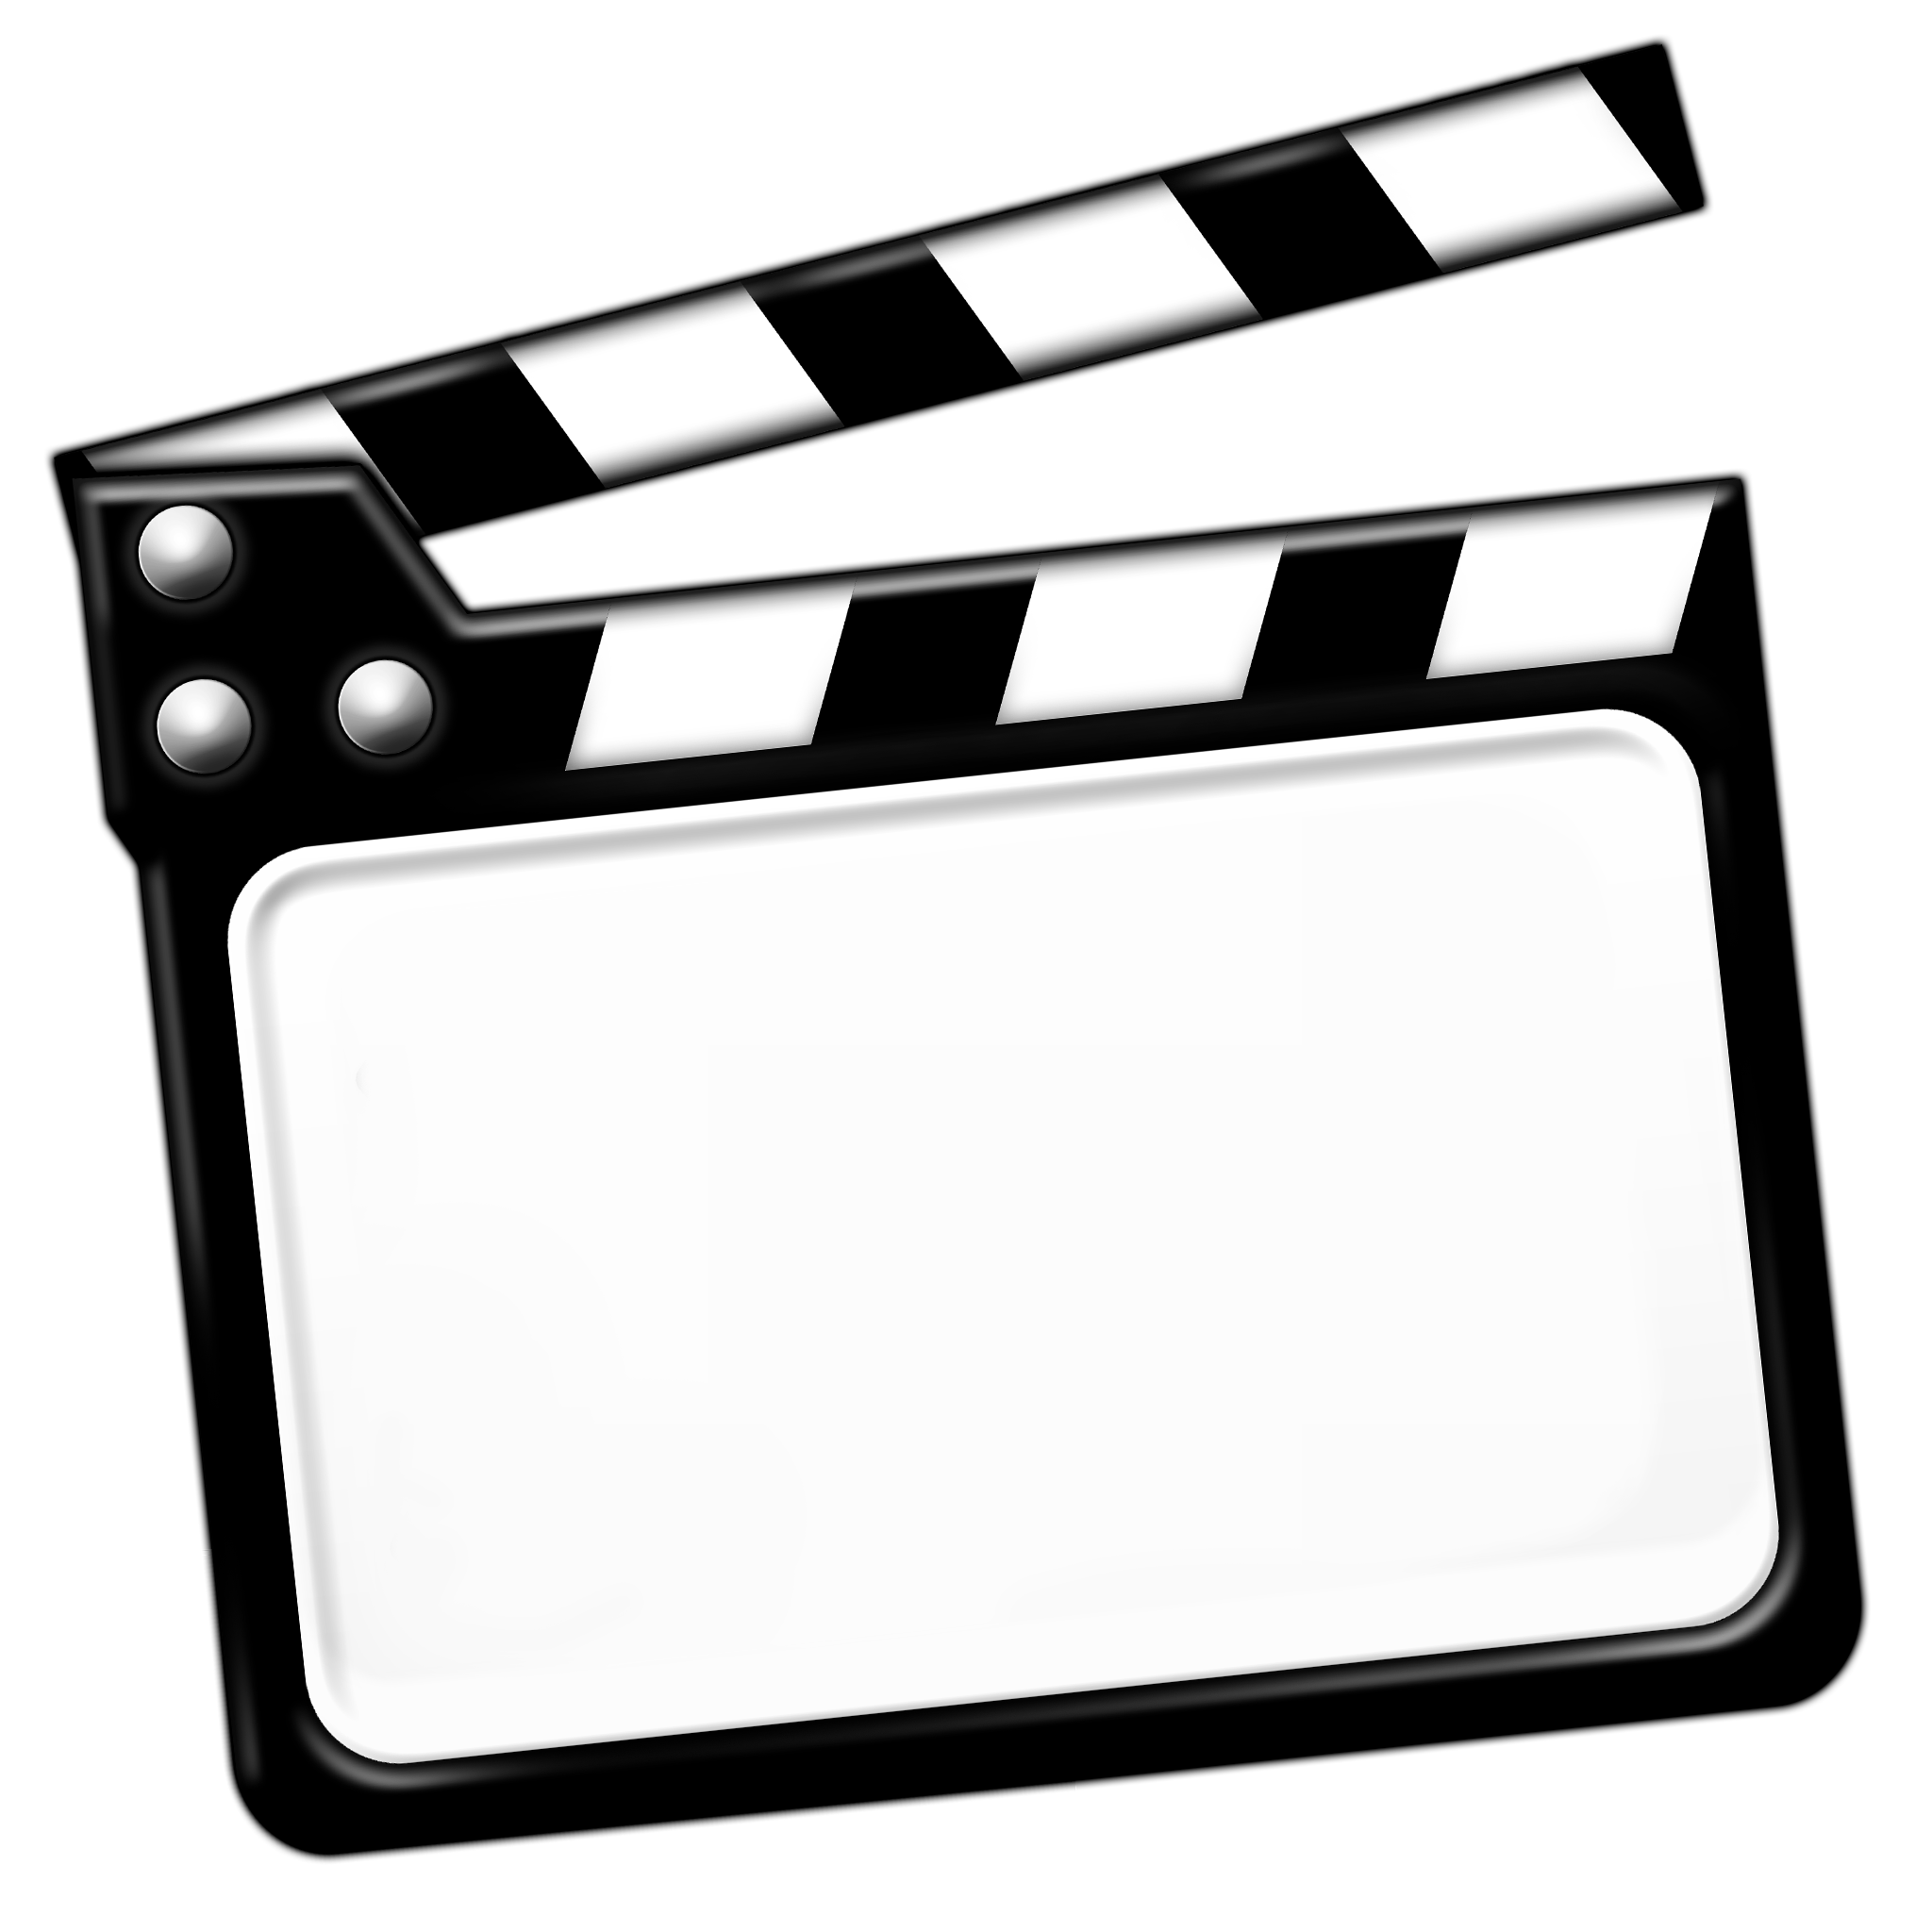 File:Media Player Classic MPC No Shadow No Numbers.png.